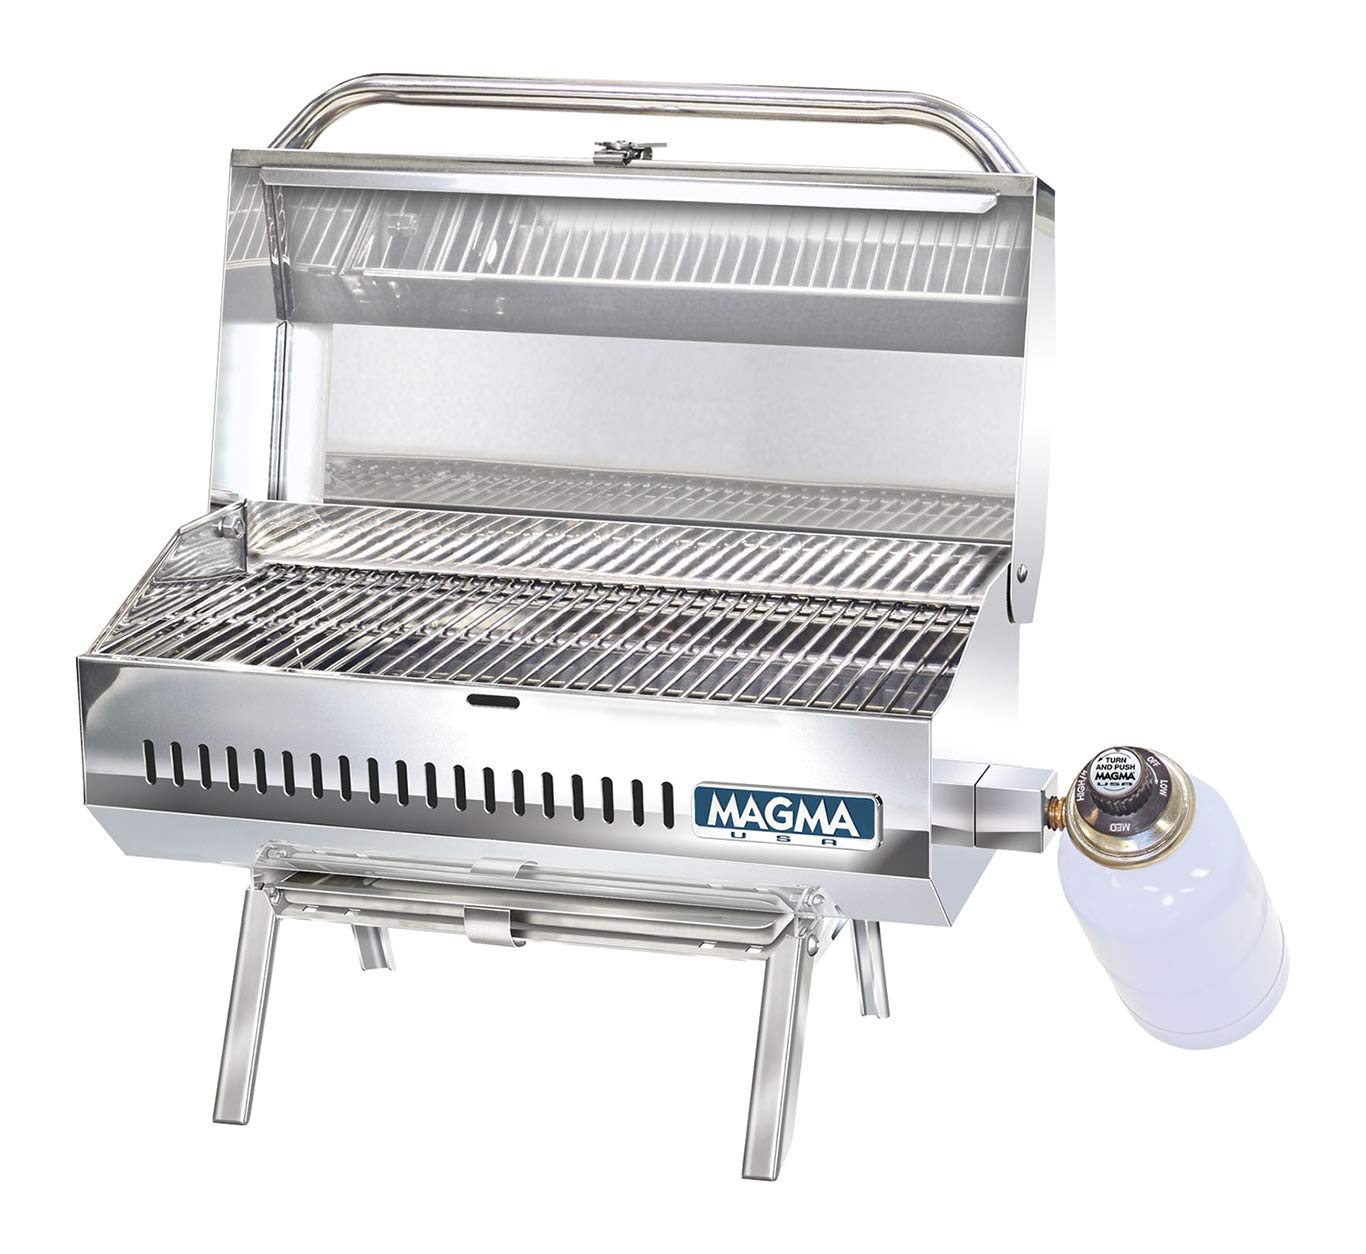 B0018Y4SXW Magma Products, Conniosseur Series Gas Grills, Propane, LPG, Stainless Steel 71sldlMzQgL